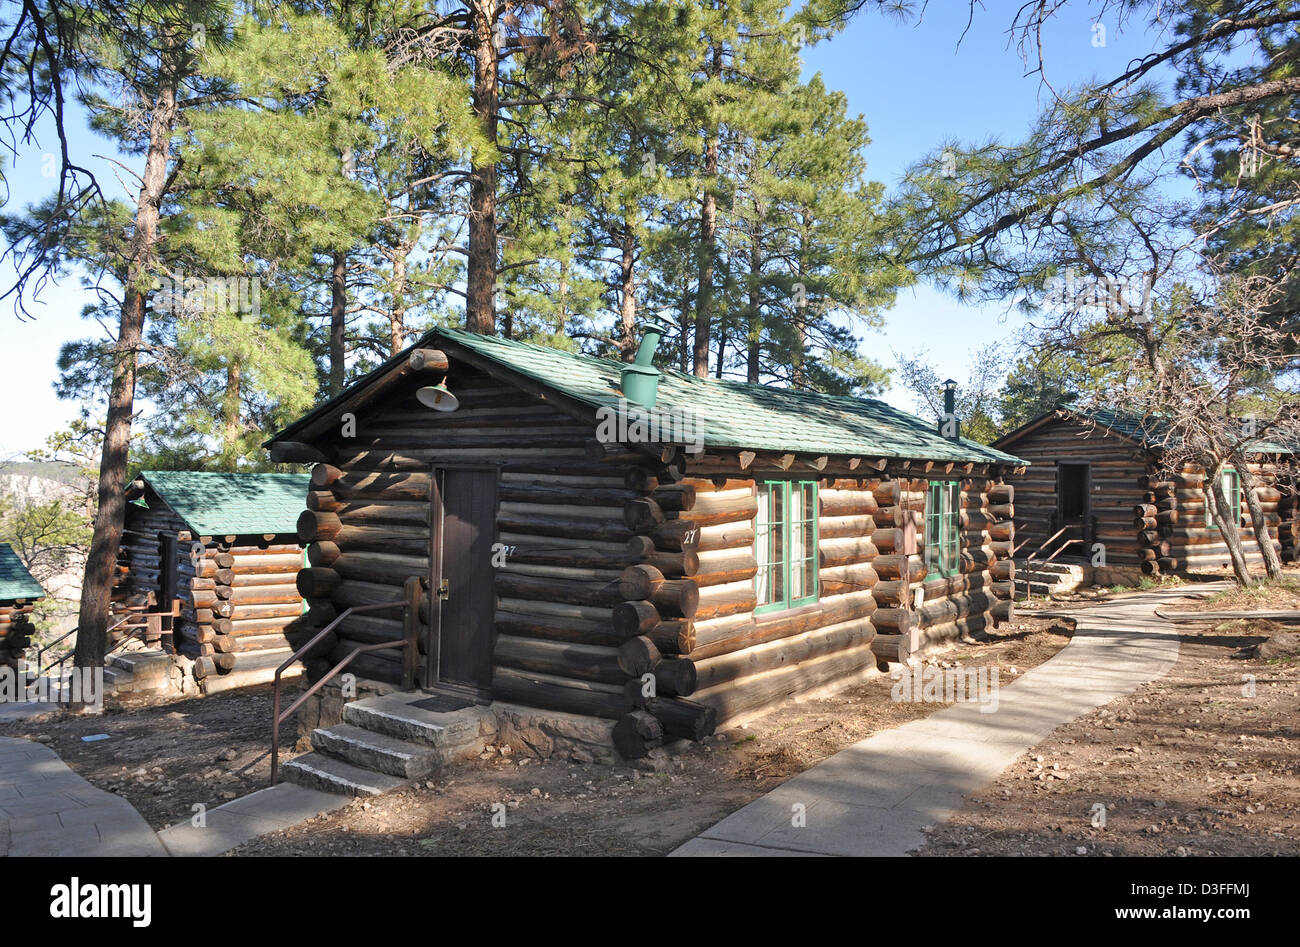 about ranch mg at need cabins in s phantom guide staying you grand canyon know the to travel everything